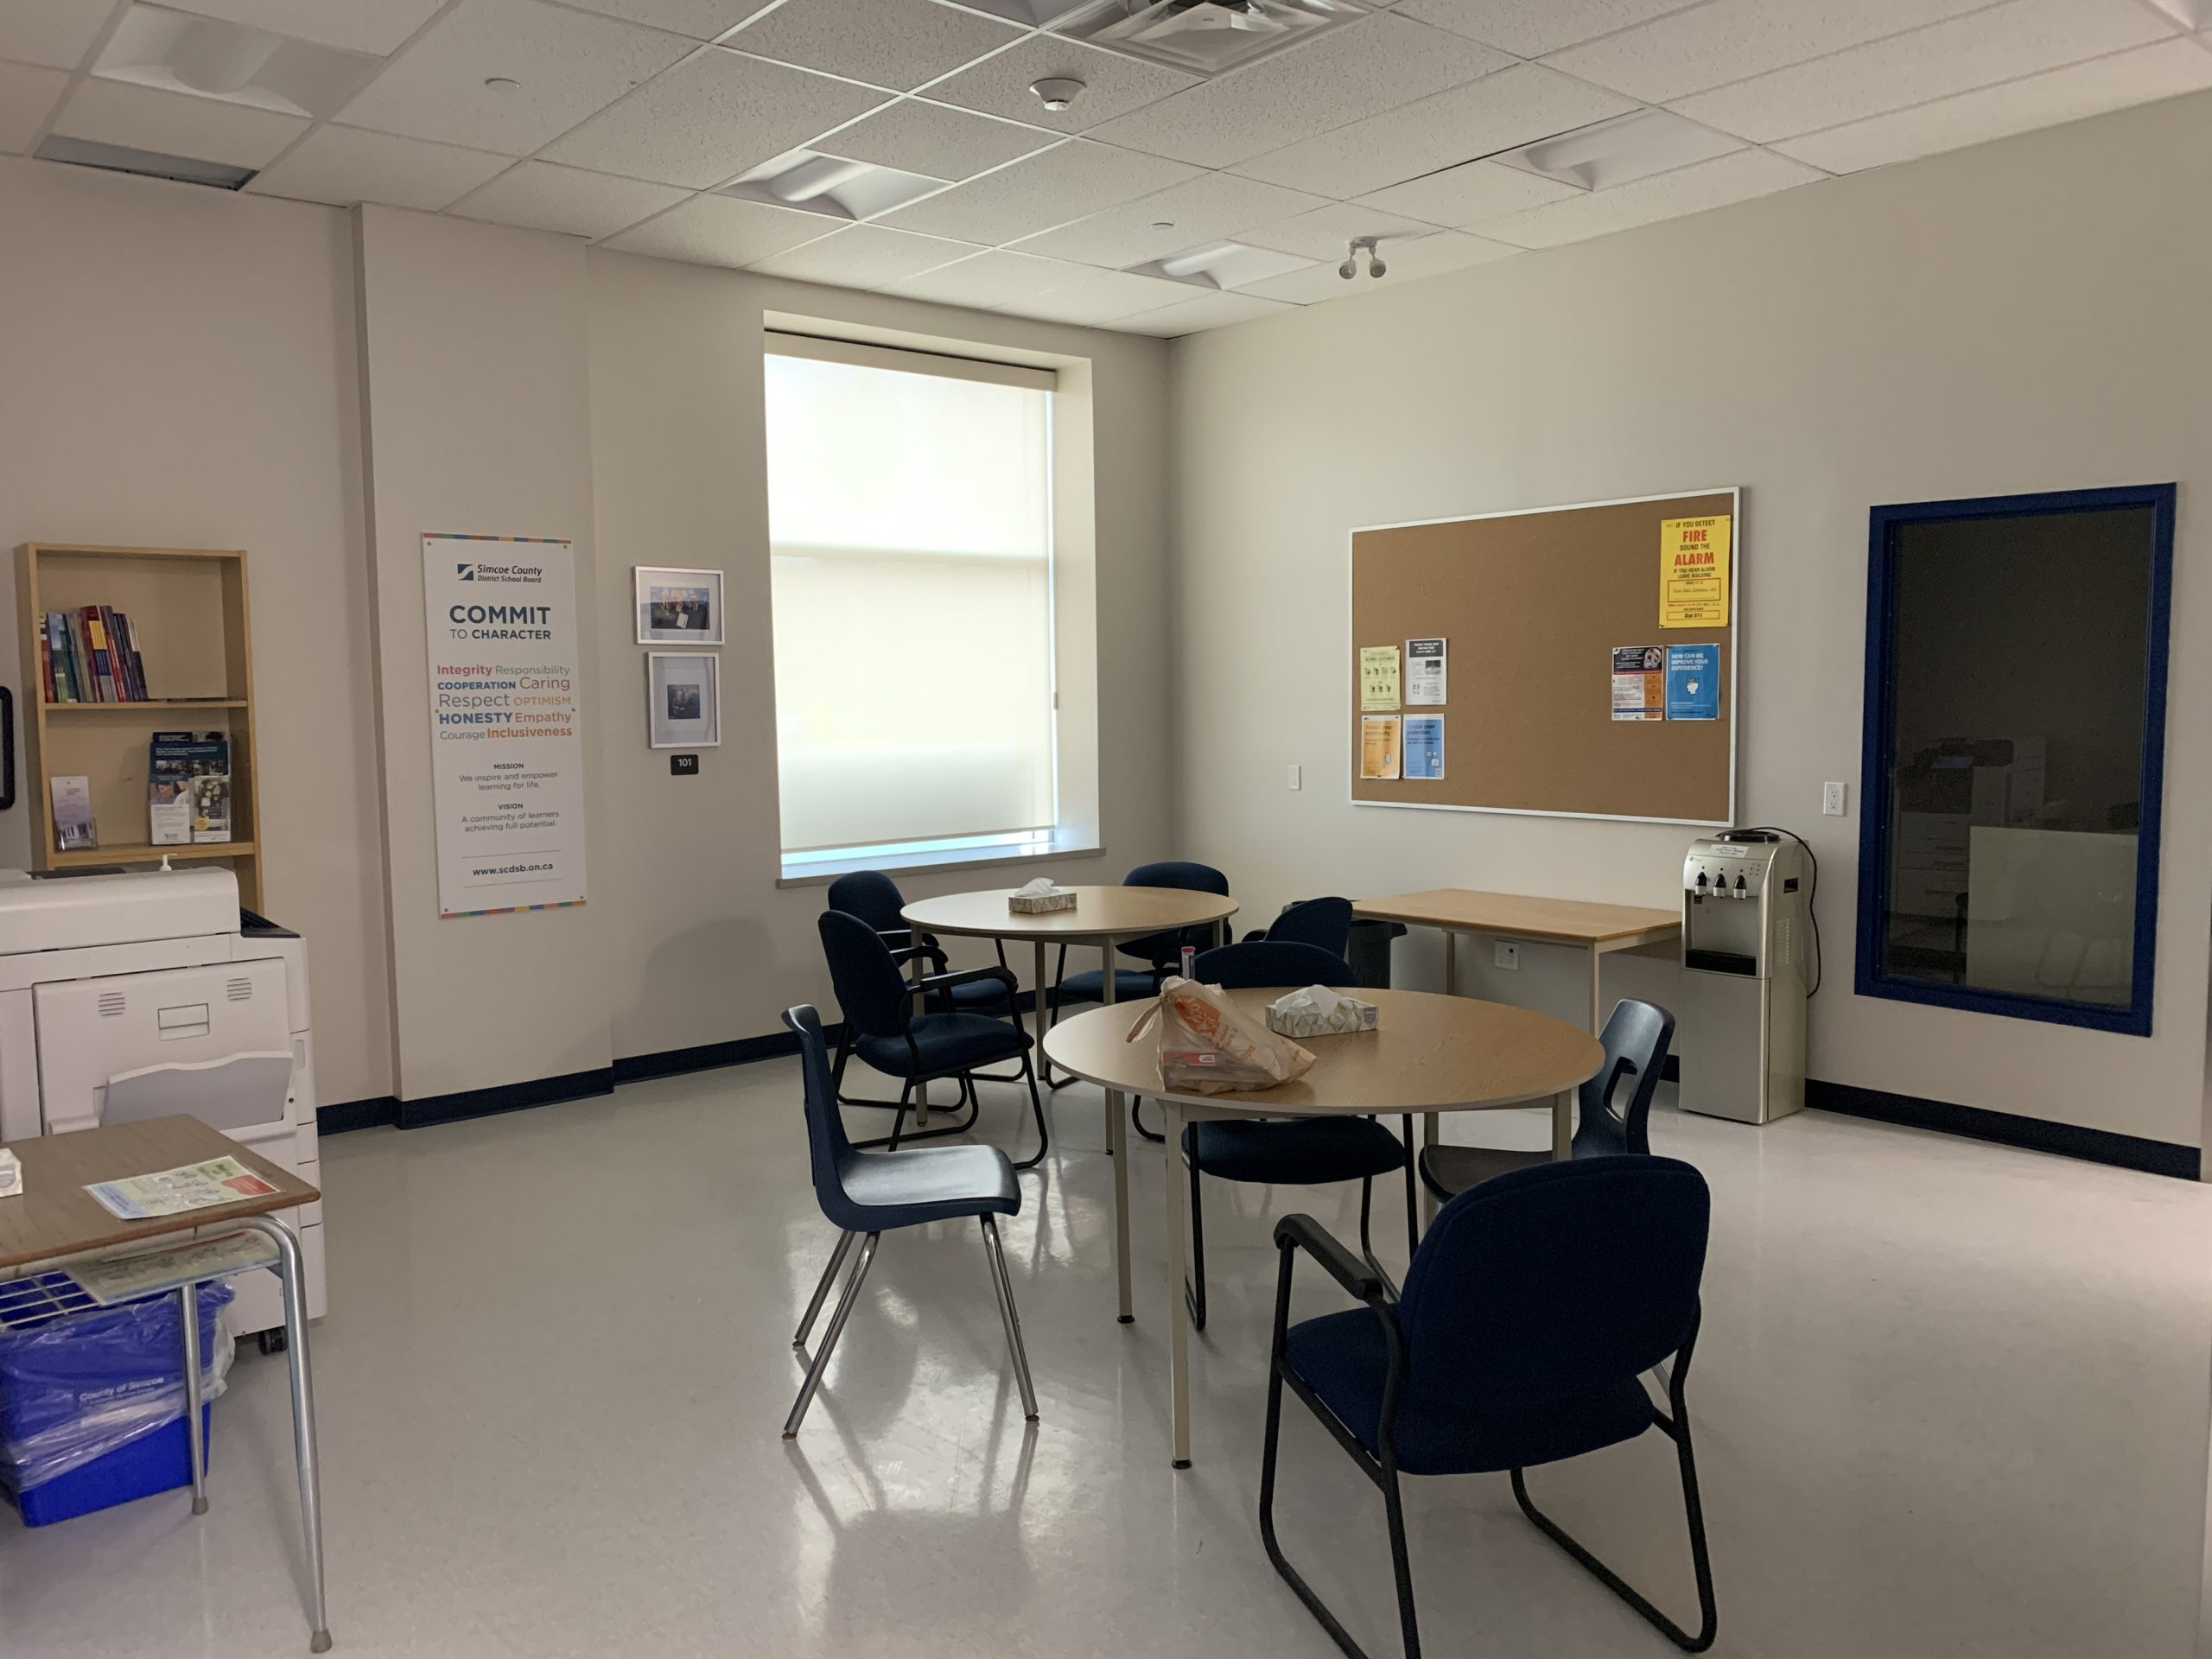 The common area, with circle tables and blue chairs at the Simcoe County District School Board's North Simcoe Learning Centre and Simcoe Shores Secondary School – Midland Campus. This project was managed by our Employee Spotlight feature, Jana Shneider.